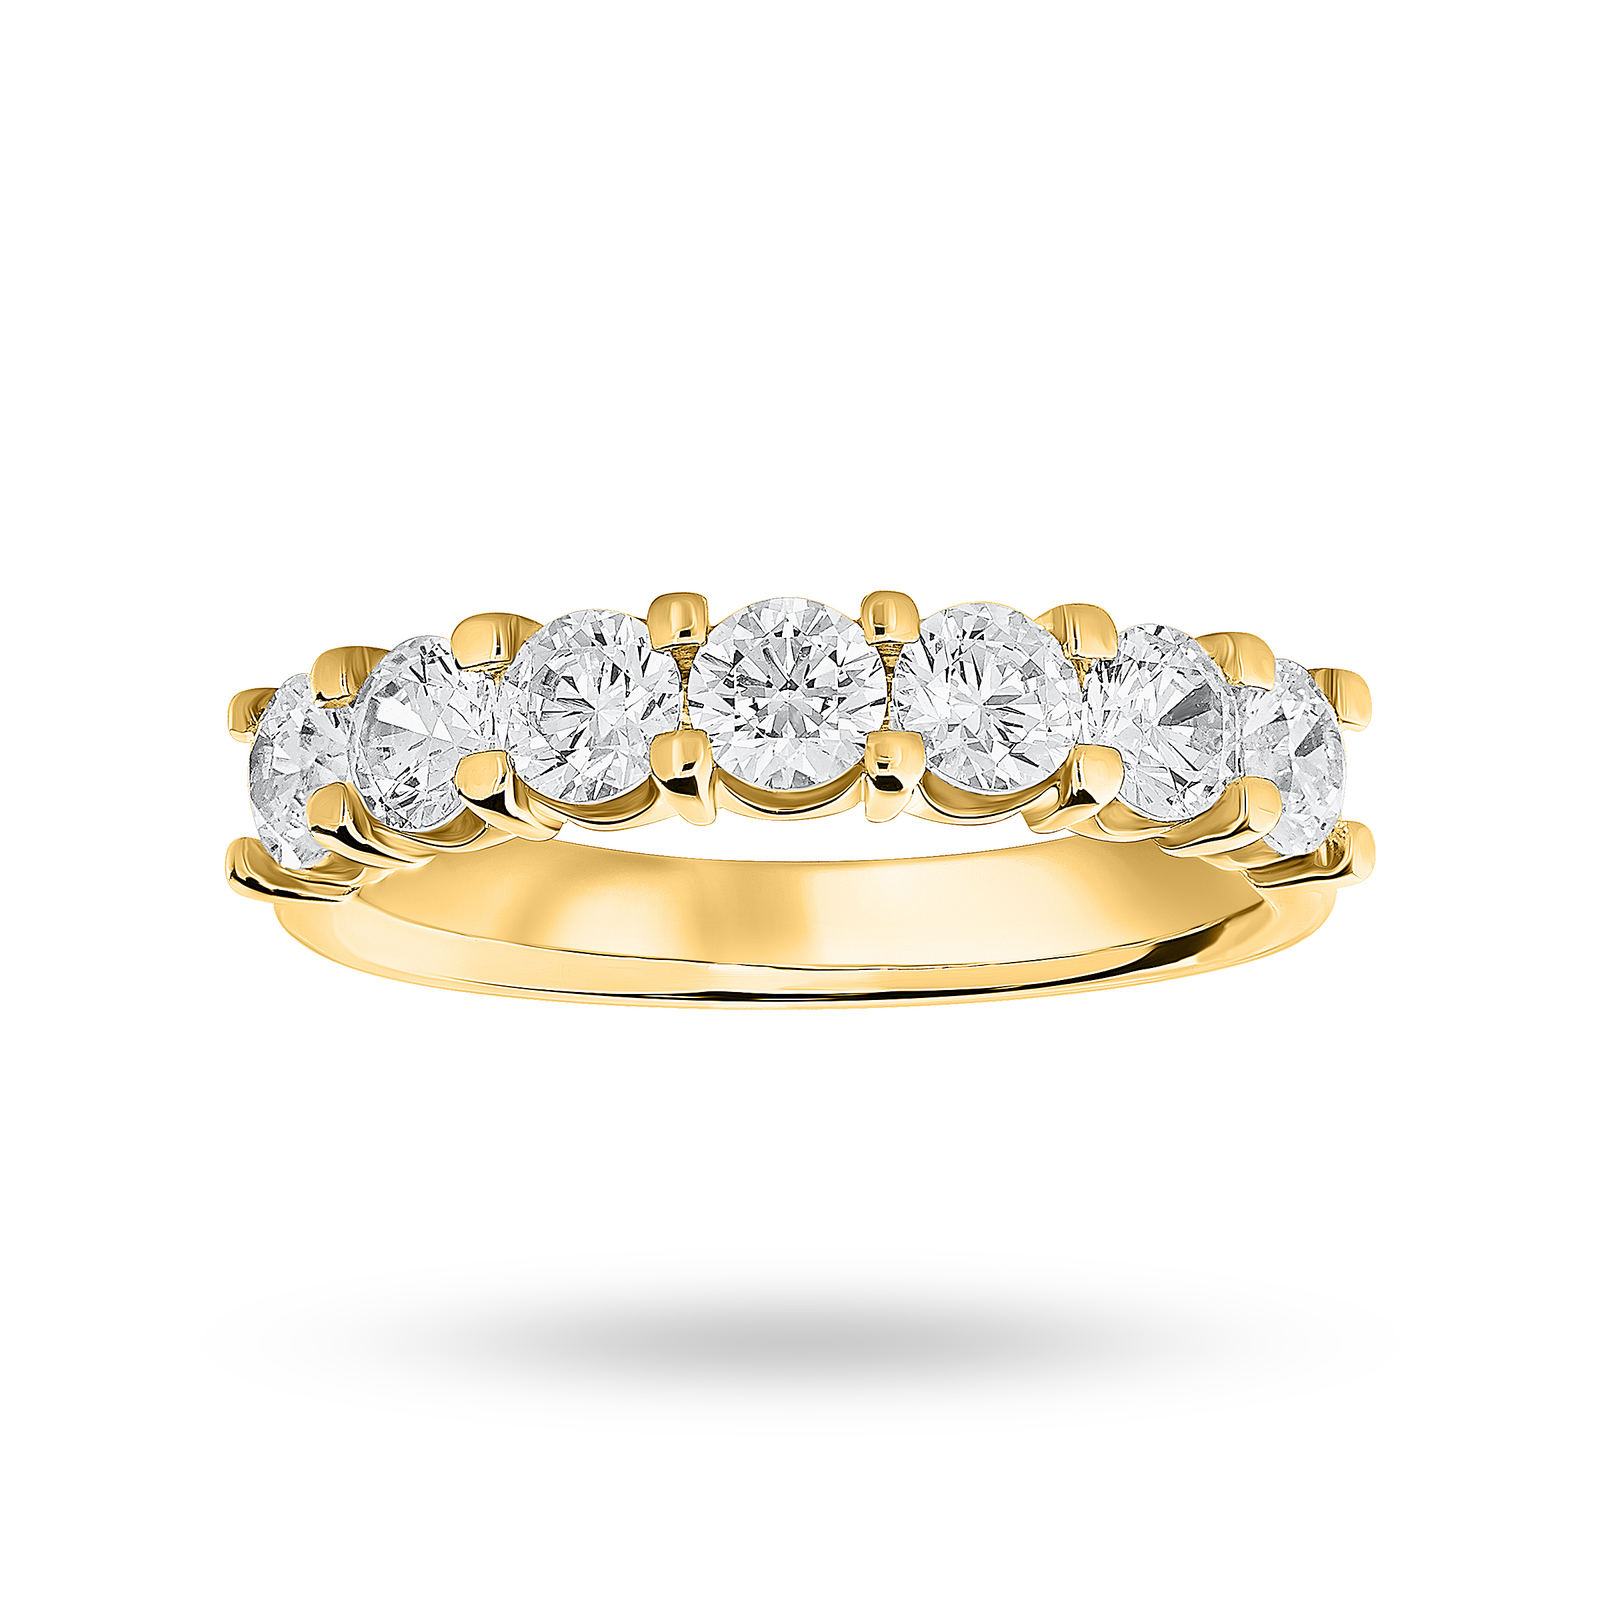 18 Carat Yellow Gold 1.30 Carat Brilliant Cut Under Bezel Half Eternity Ring